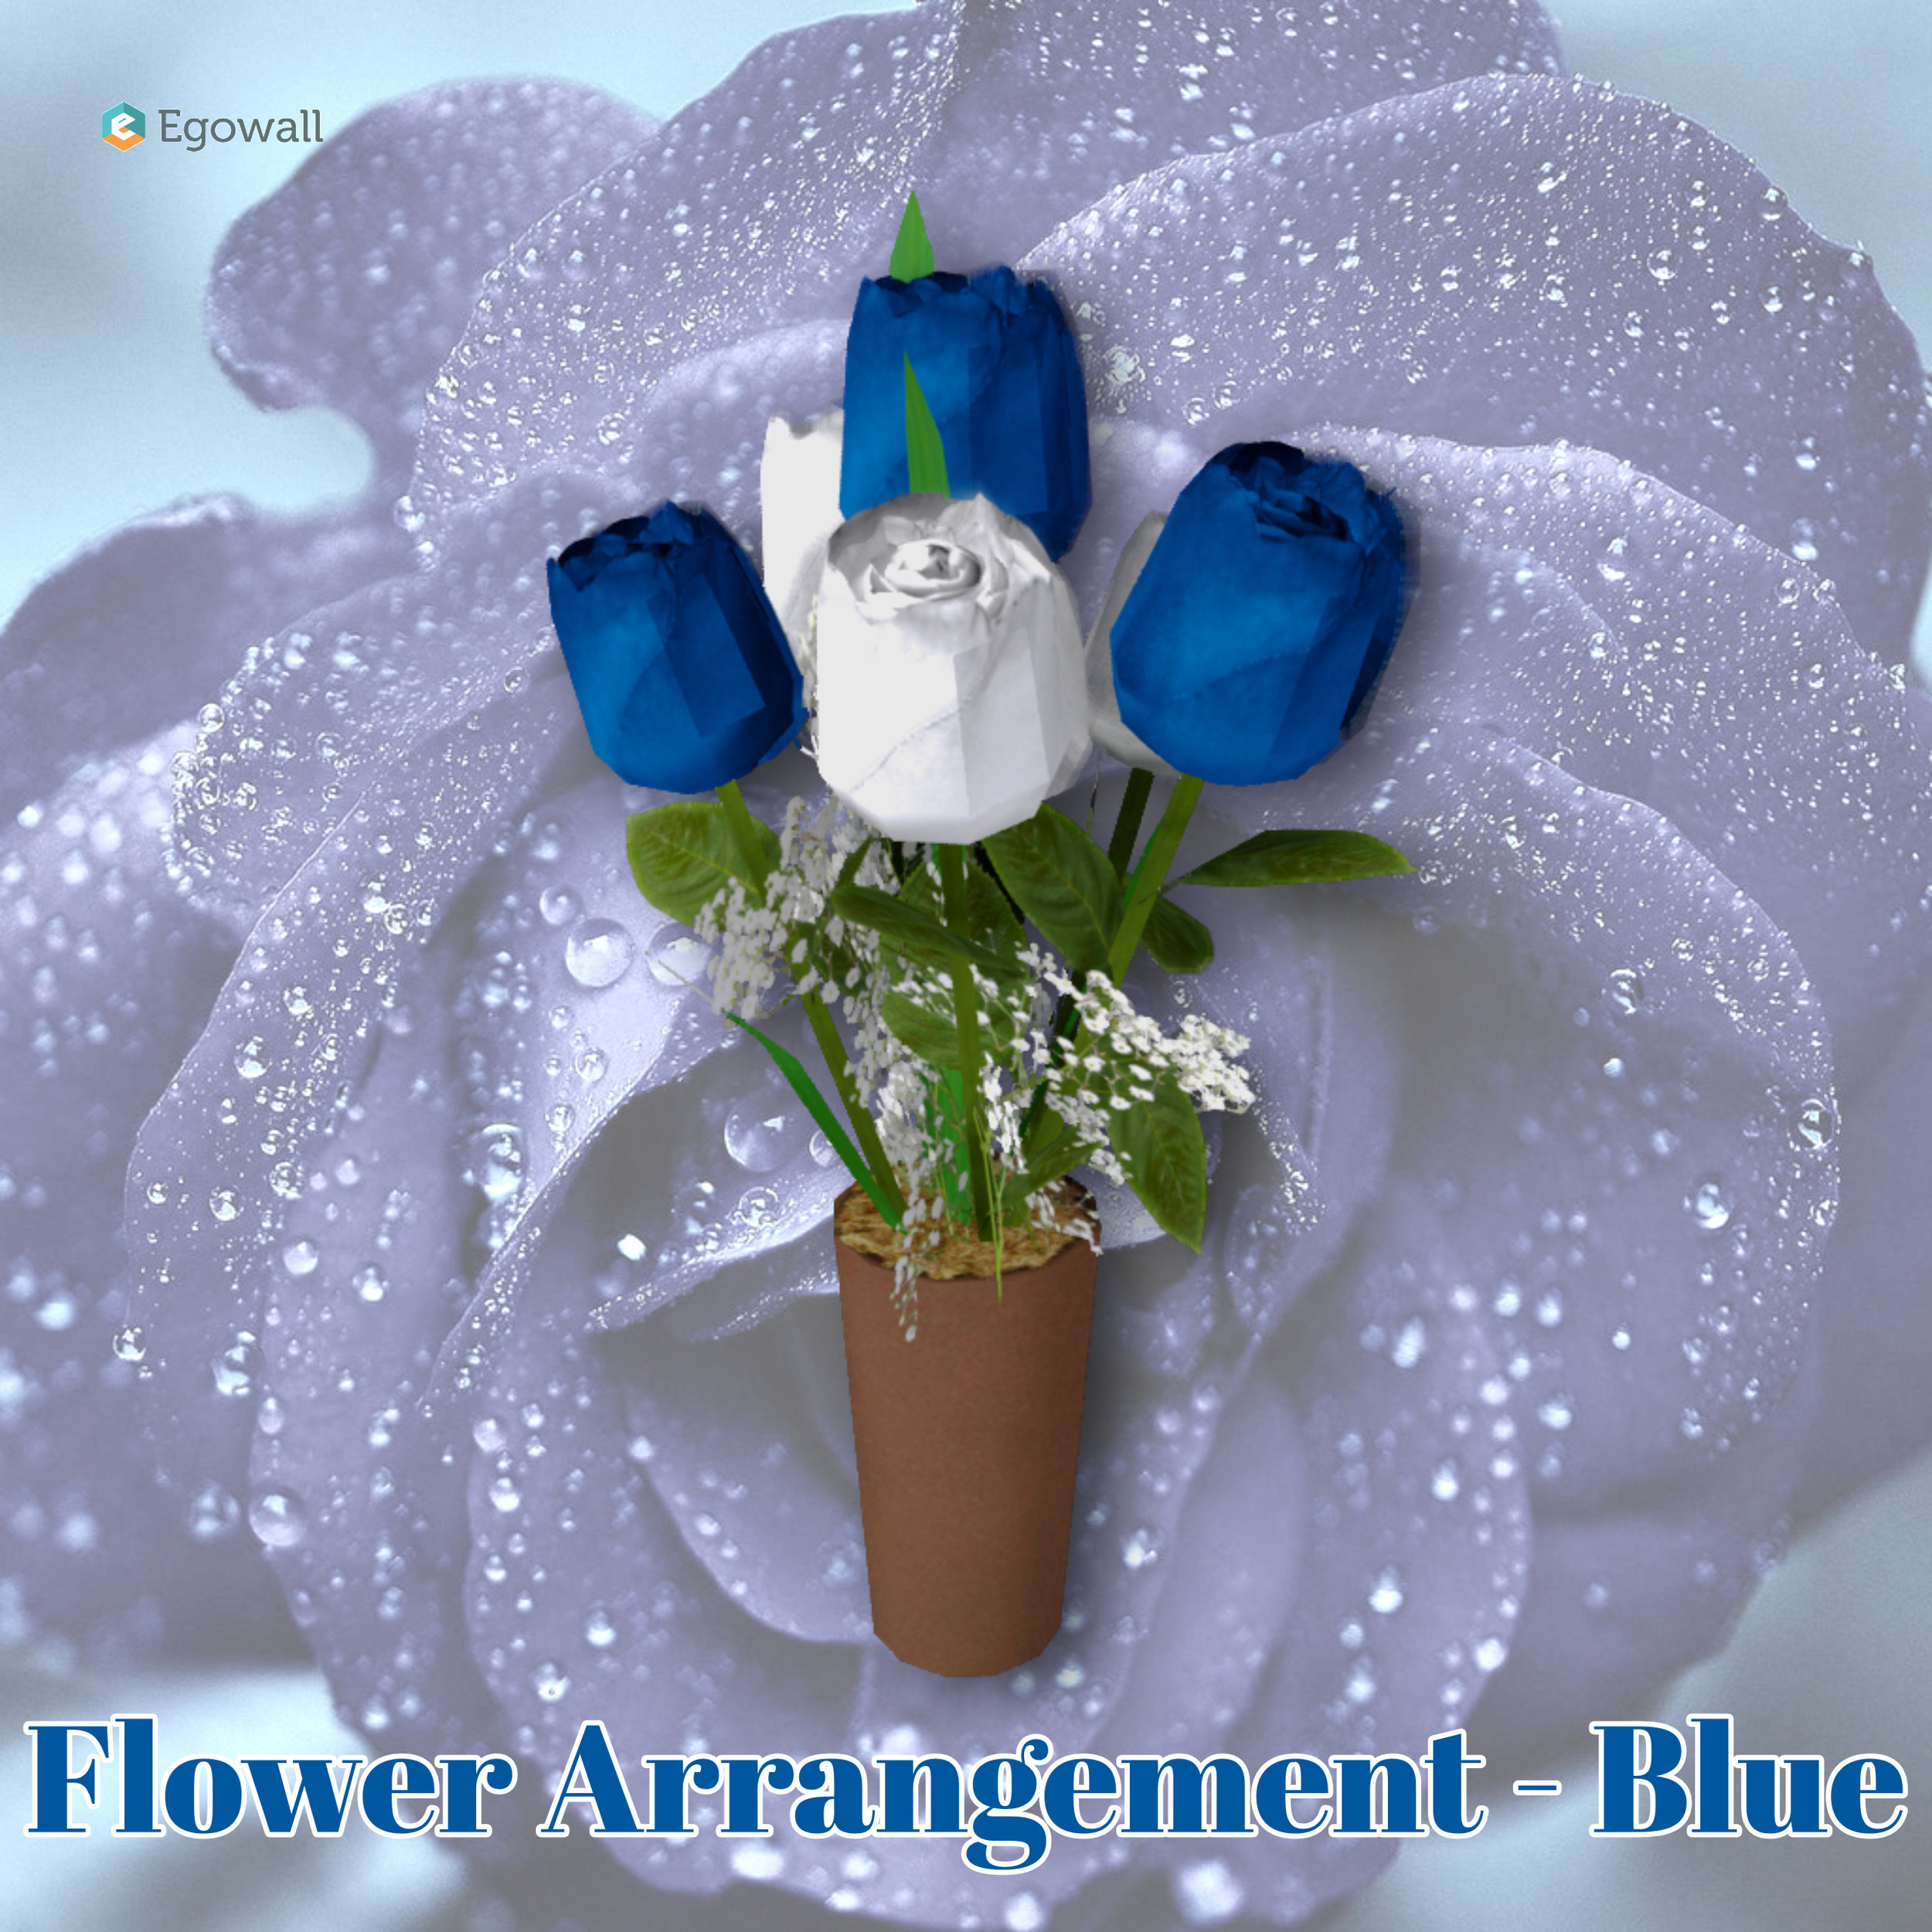 Flower Arrangement - Blue.Instagram.jpg